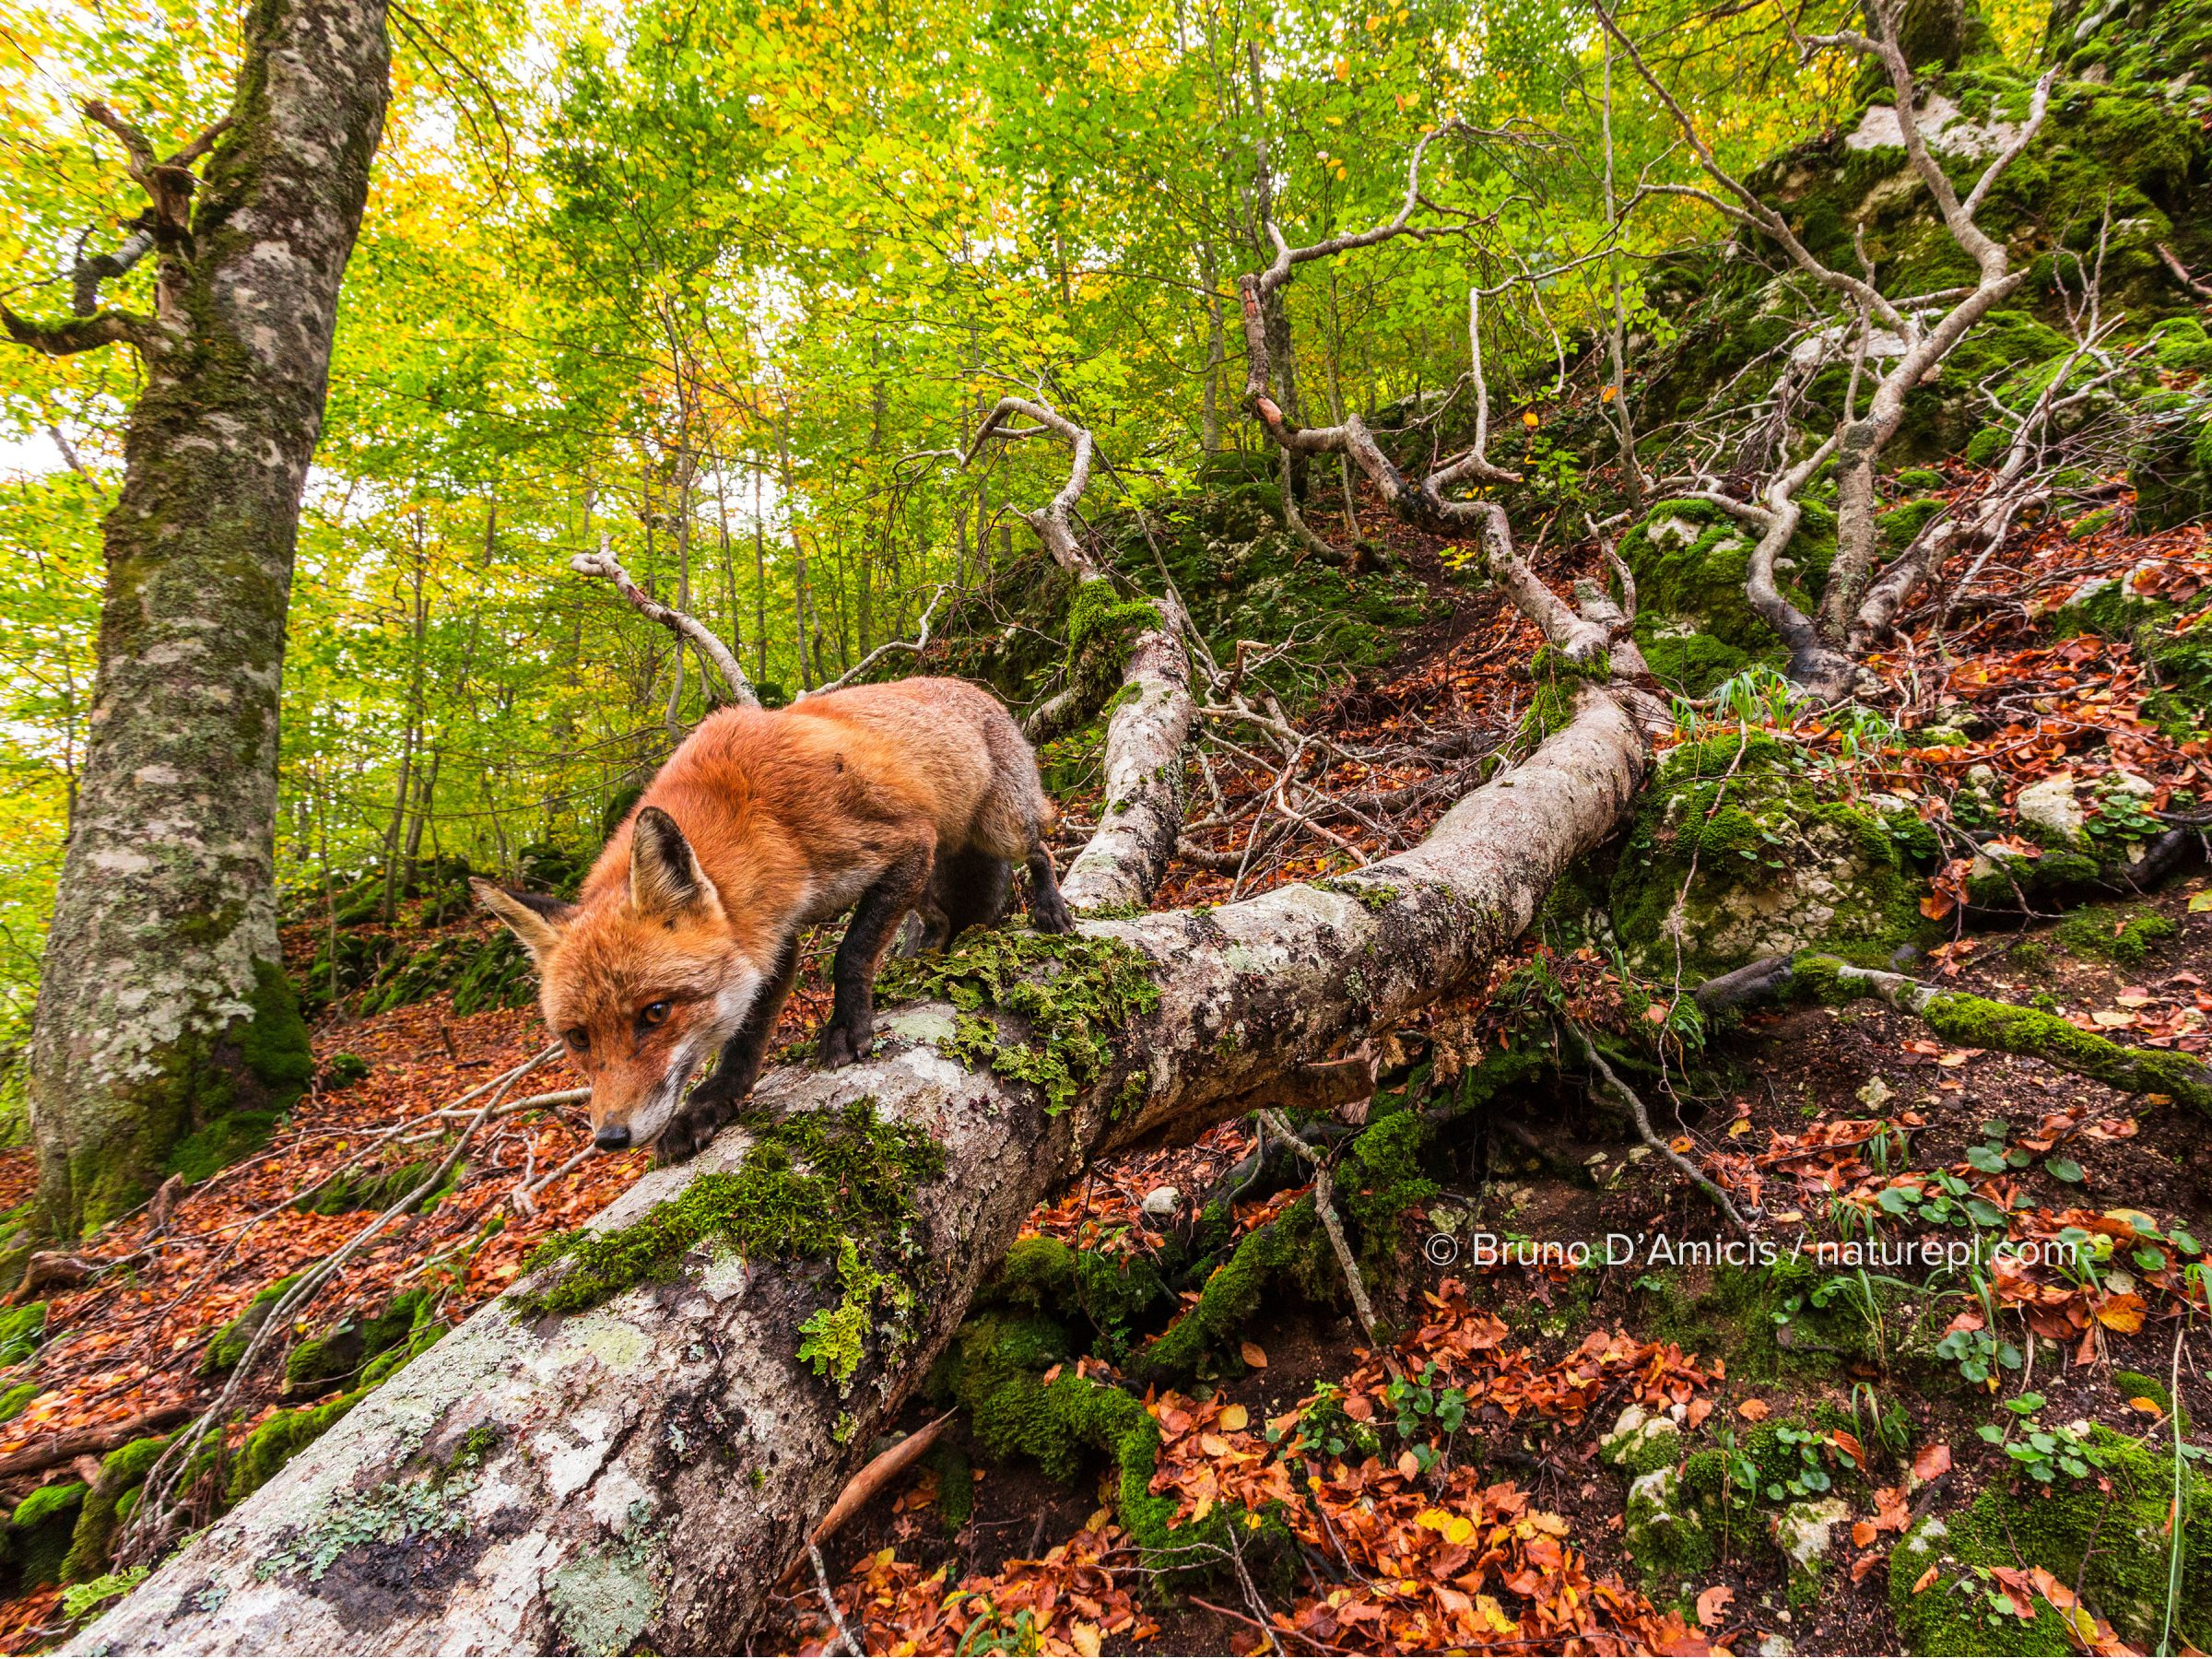 Red fox (Vulpes vulpes) walking along fallen trunk of old Beech (Fagus sylvatica) tree, Coppo del Principe old-growth beech forest in autumn. Abruzzo, Lazio and Molise National Park / Parco Nazionale d'Abruzzo, Lazio e Molise UNESCO World Heritage Site Italy. October. Remote camera trap image.